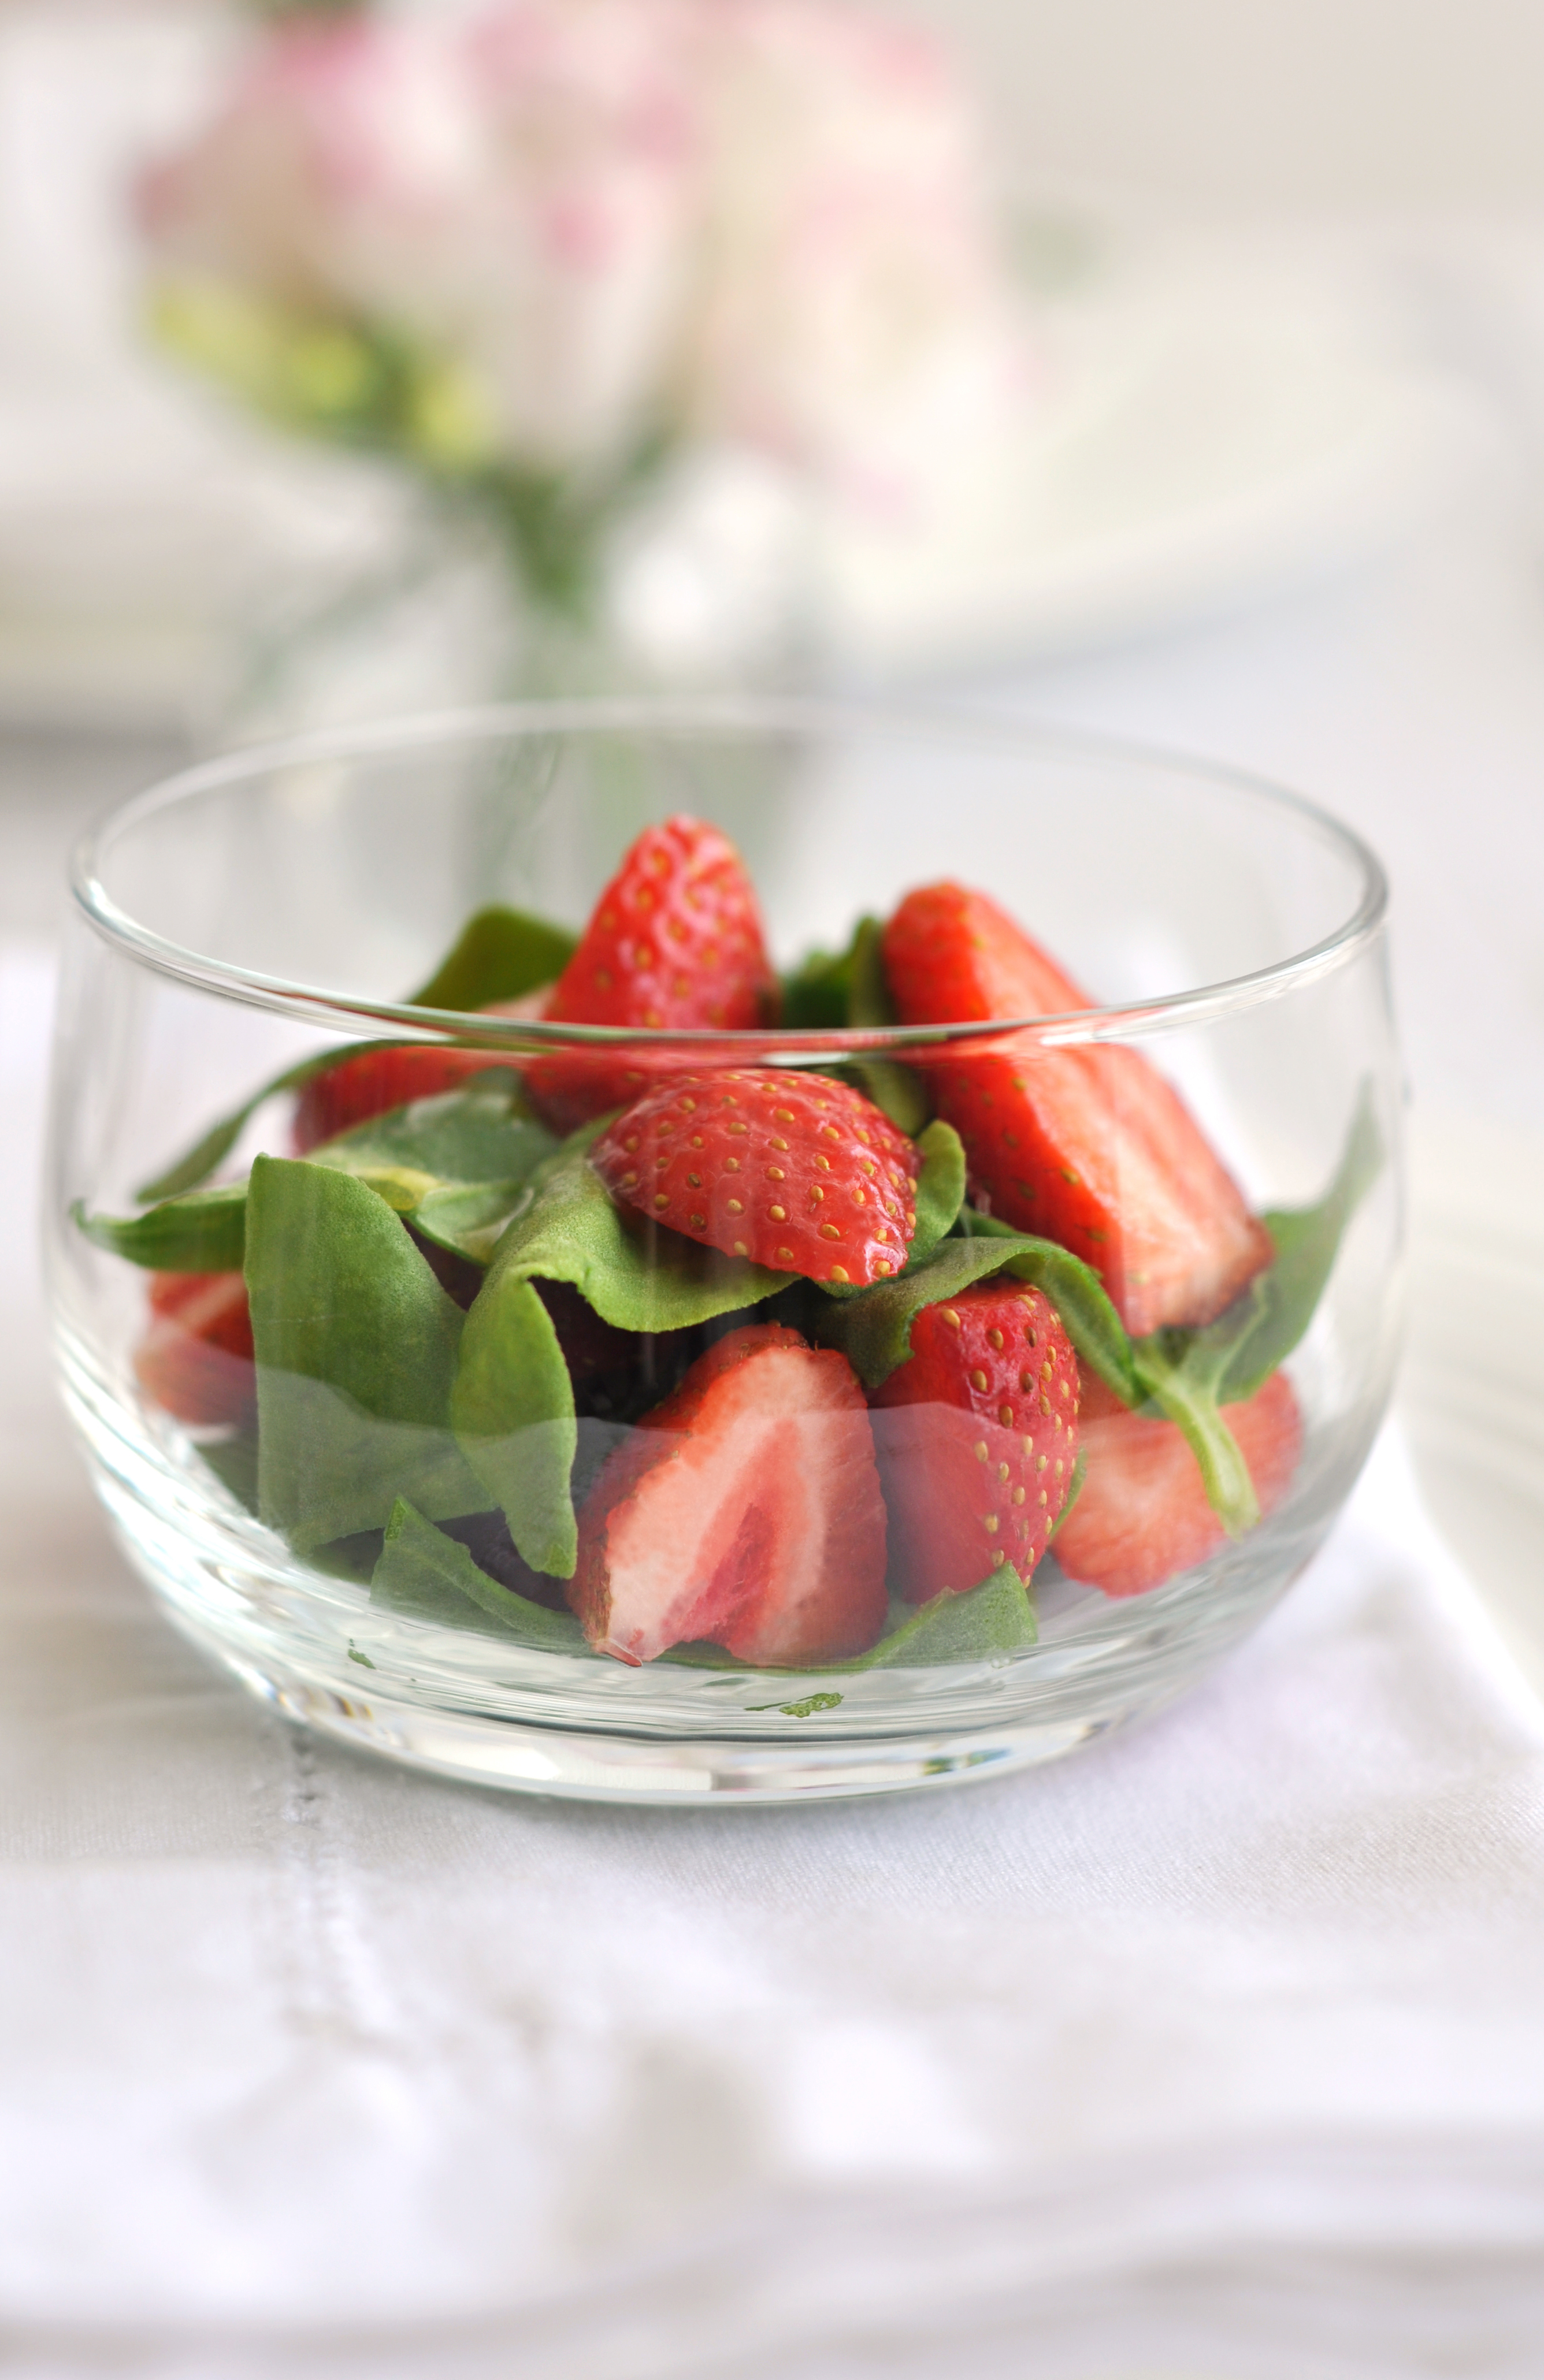 Spinach and Strawberry Salad with Pepper Vinaigrette